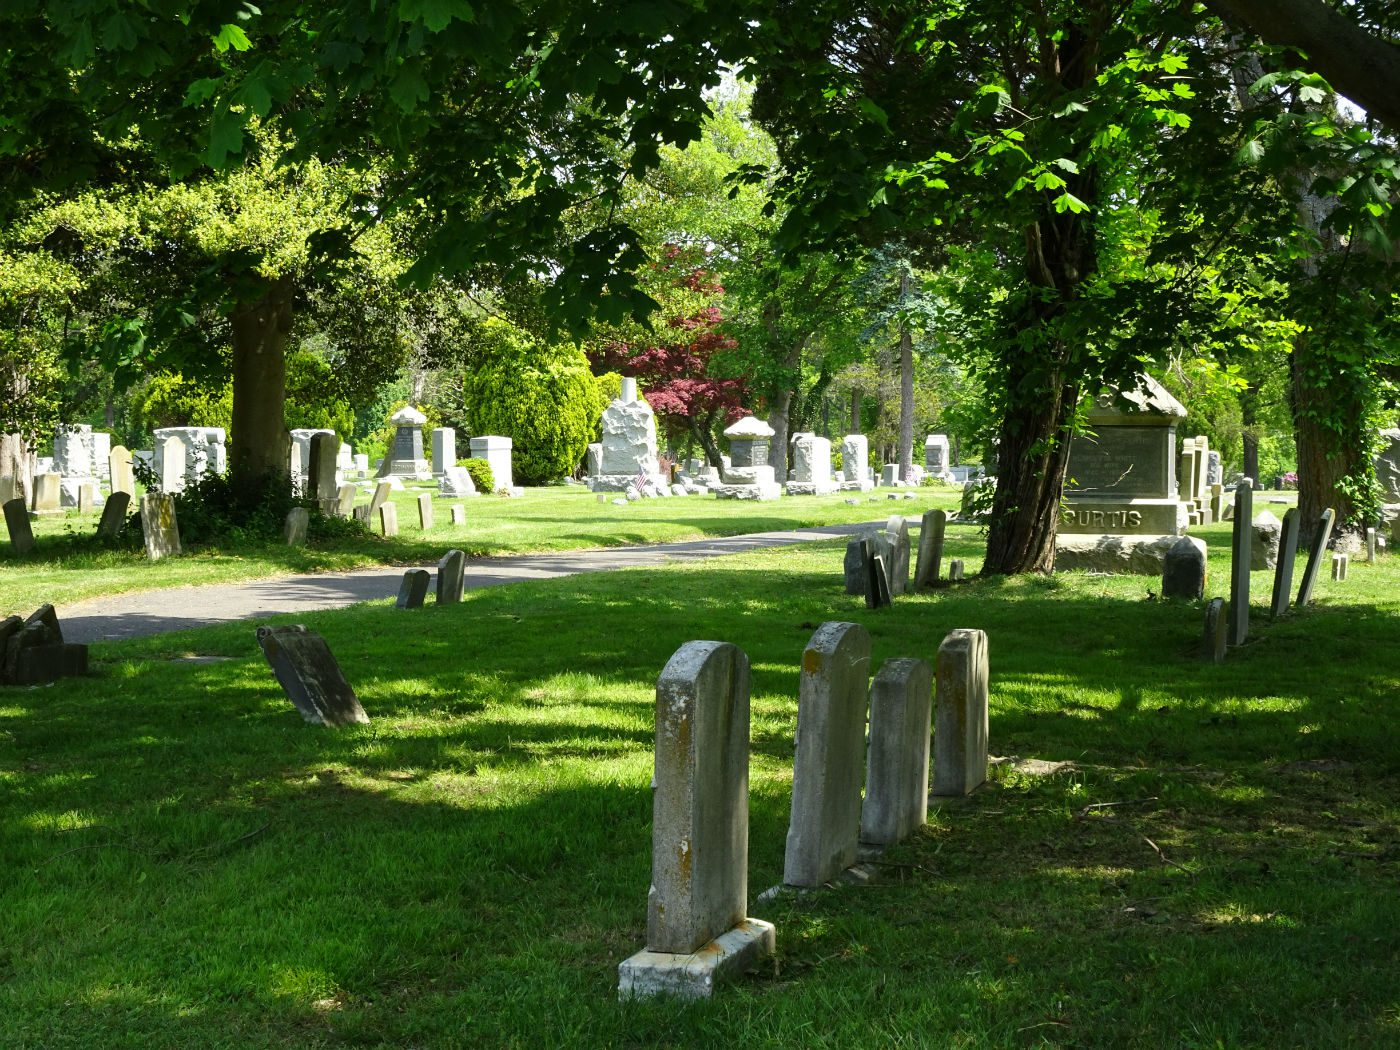 cemetery surrounded by grass and trees